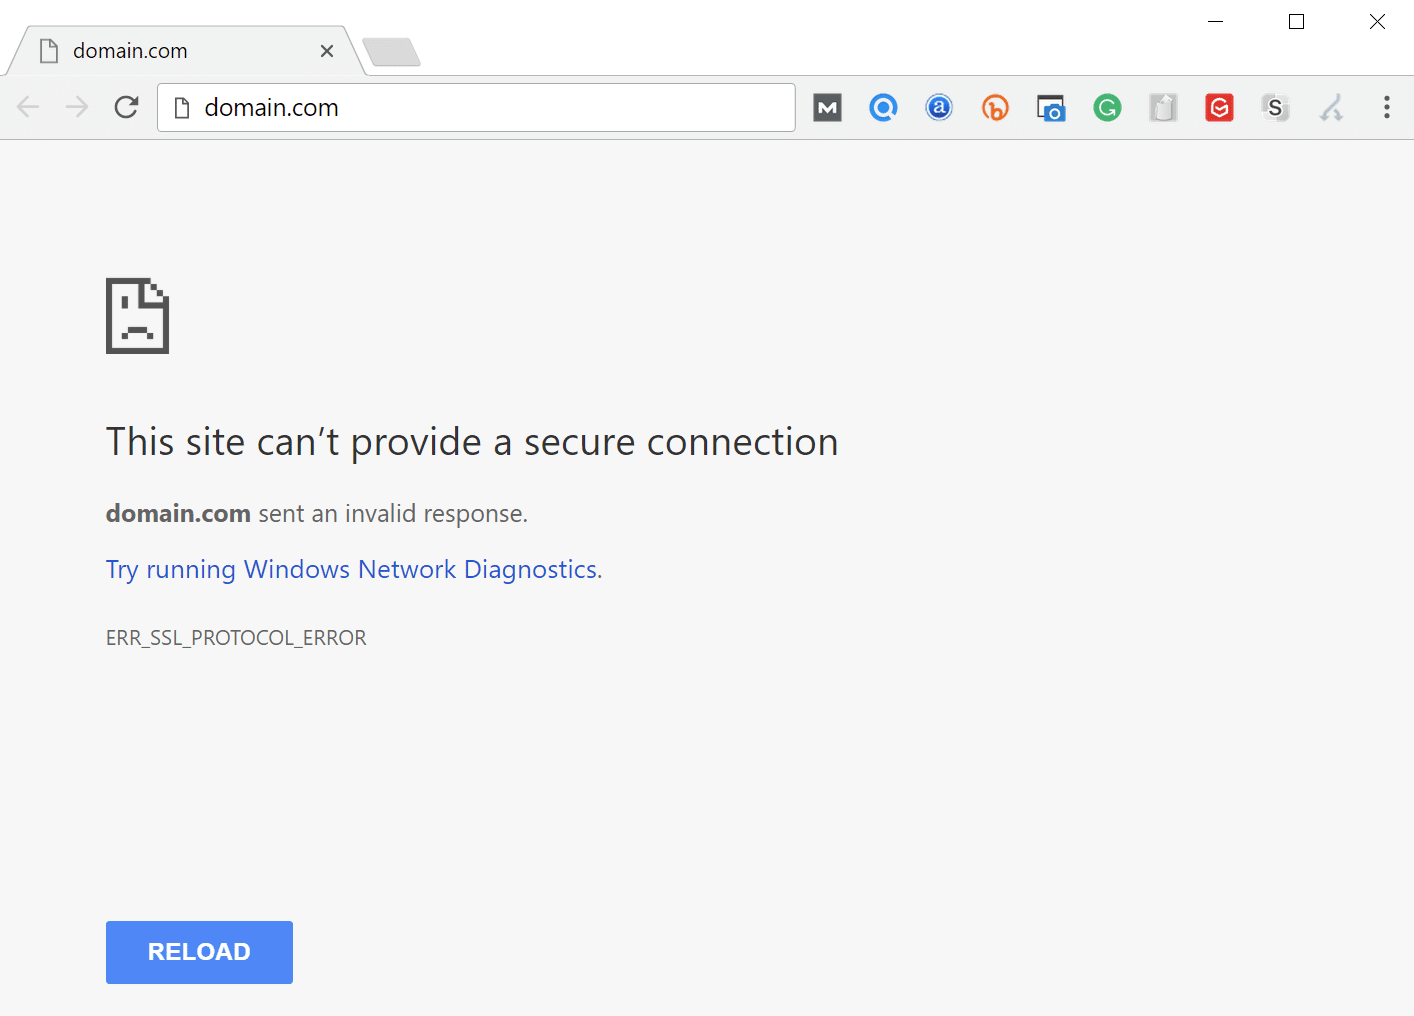 ERR_SSL_PROTOCOL_ERROR en Chrome